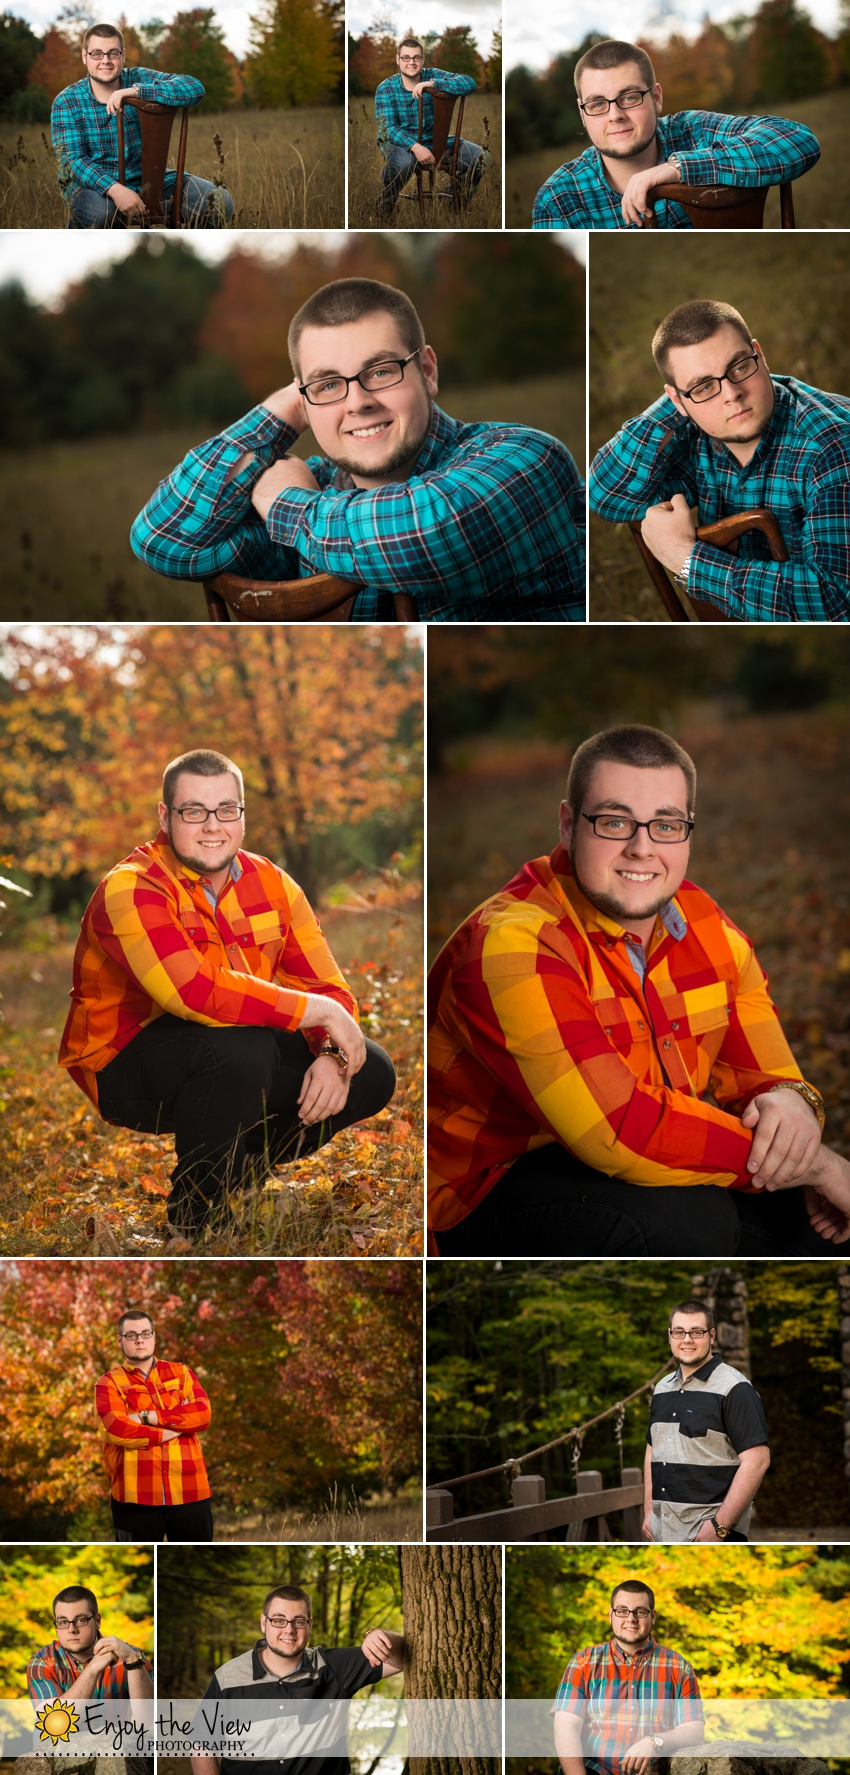 best senior photos in mid michigan, Class of 2015, Class of 2015 Boy, Clio High School, Clio High School Senior, Clio Senior Class of 2015, clio senior photographer, Clio Senior Photographers, clio senior pictures, Fall Senior Photos, flint senior photos, flint senior pics, michigan photographer, Senior, Senior Boy, Senior Class of 2015